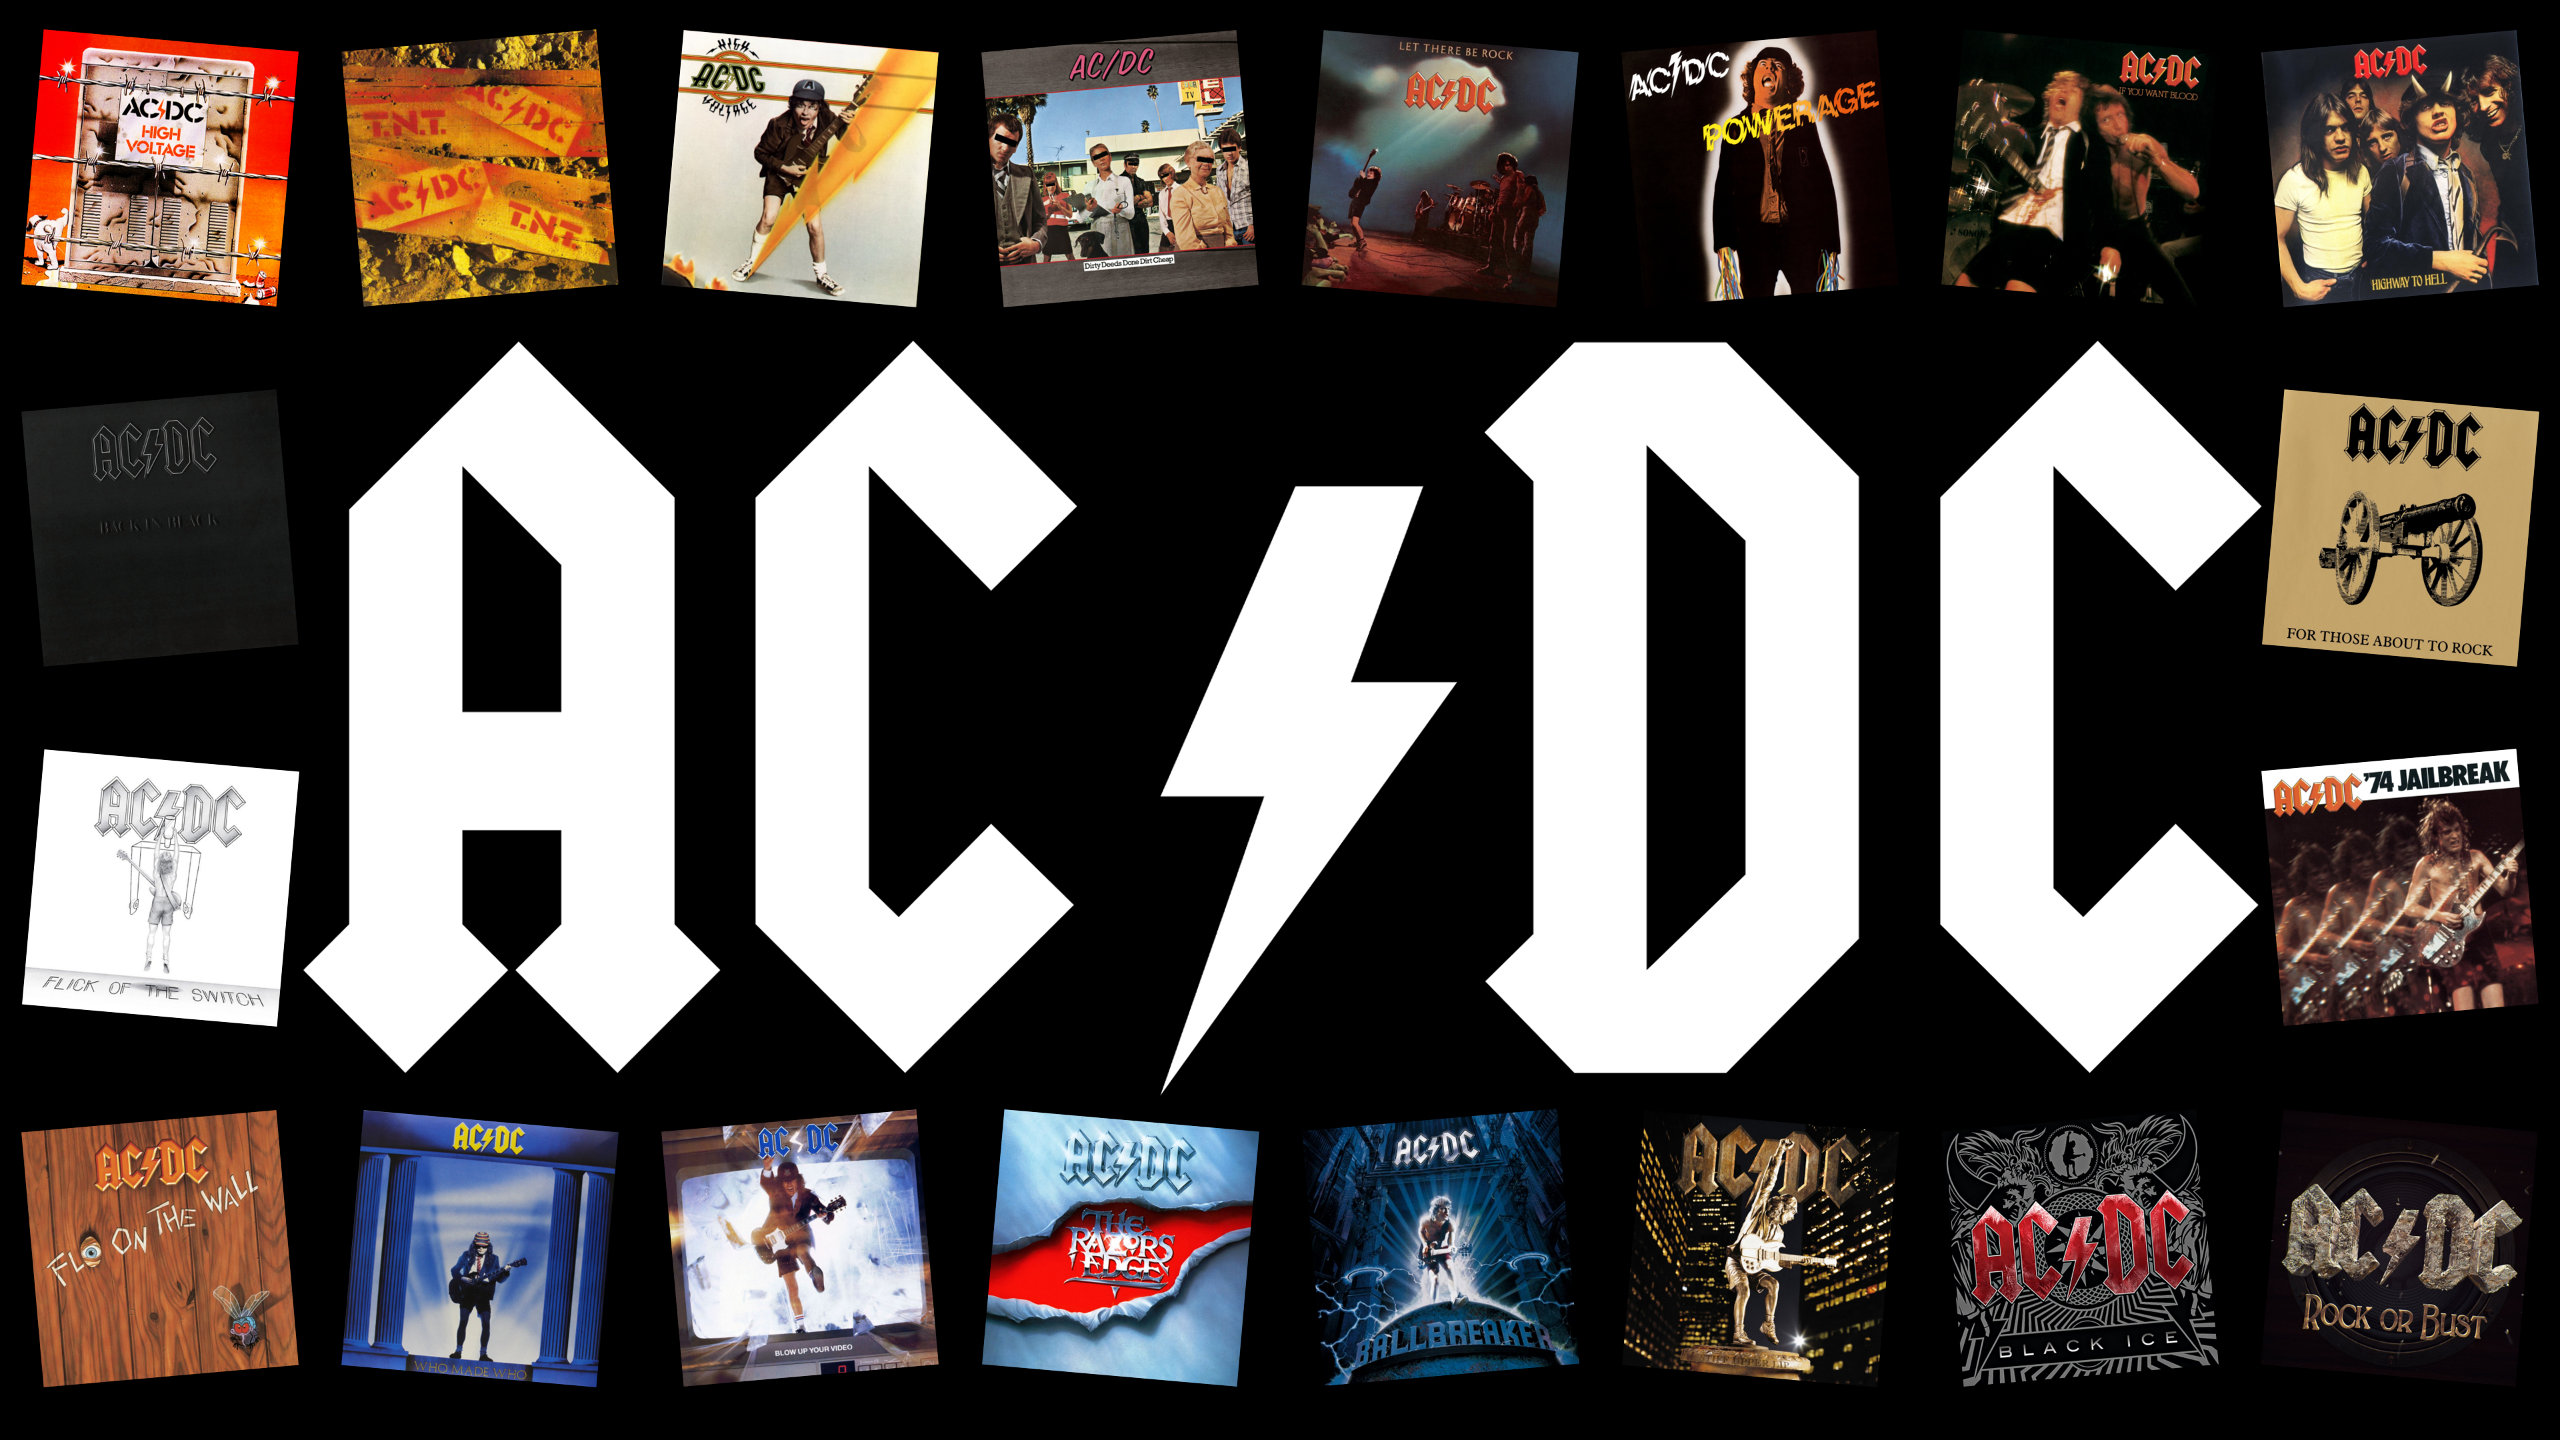 Free Download Acdc Wallpaper Id438682 Hd 2560x1440 For Pc